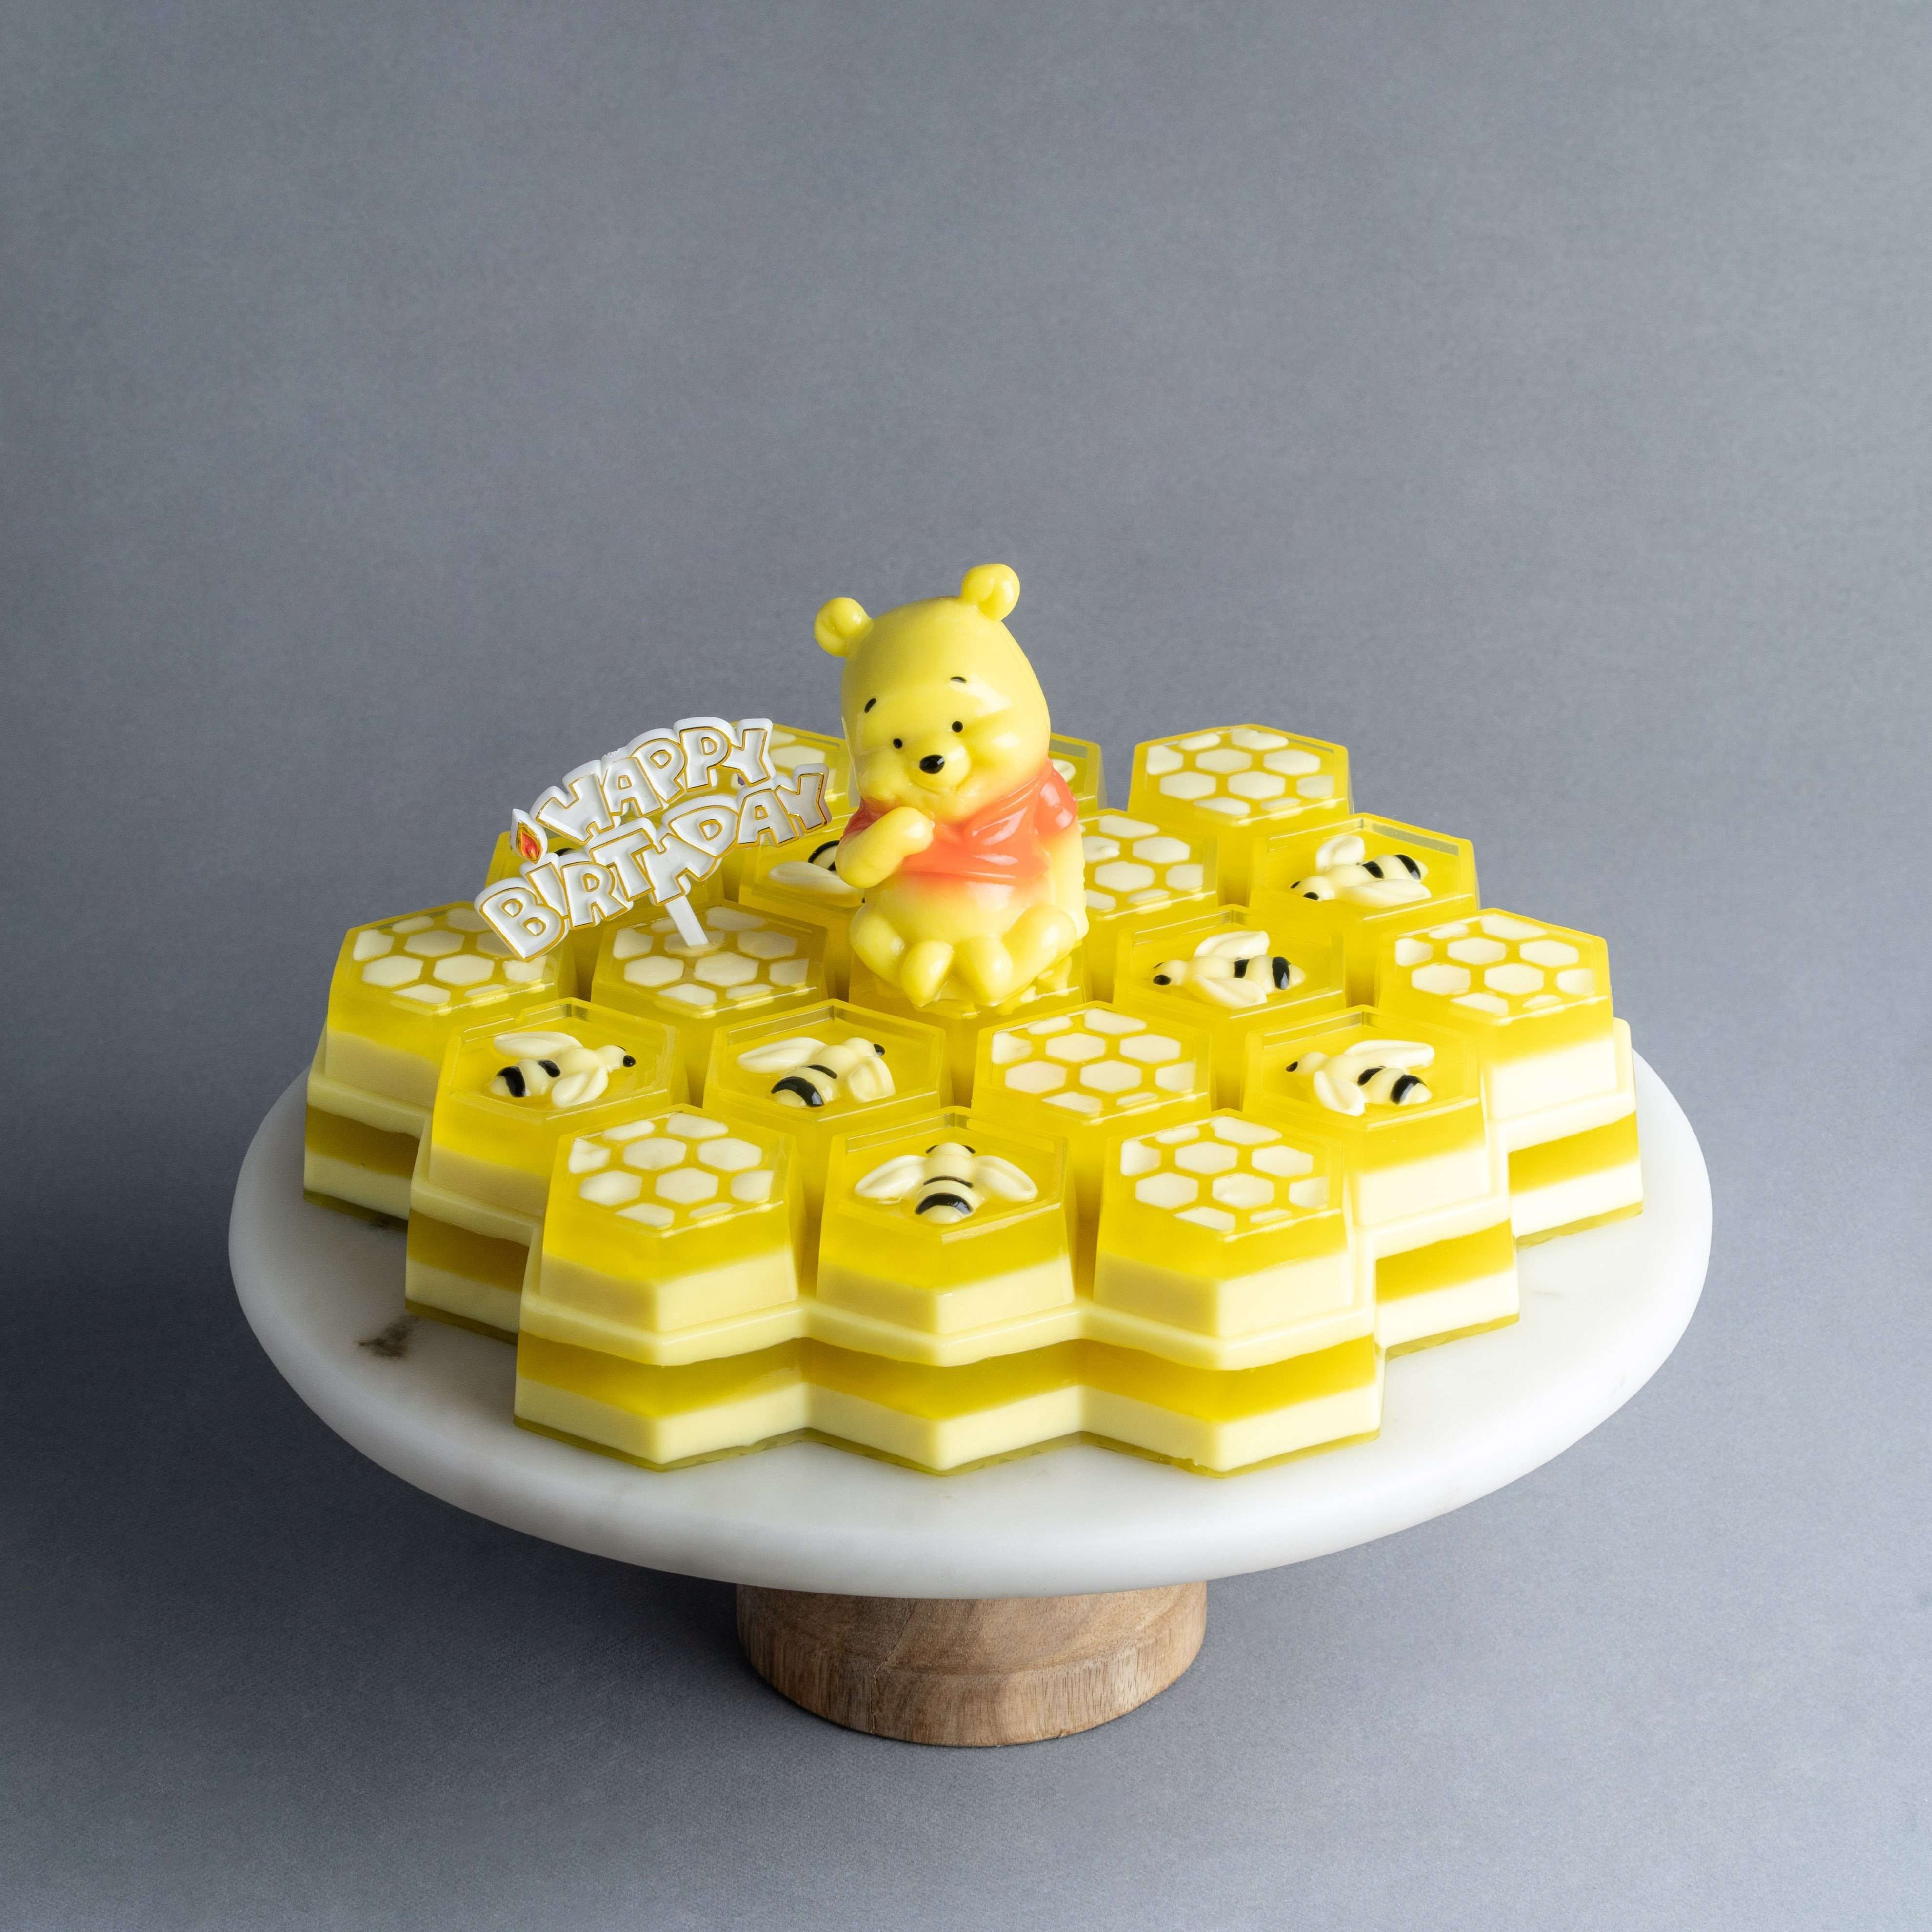 Excellent Winnie The Pooh Jelly Cake Eat Cake Today Birthday Cake Funny Birthday Cards Online Alyptdamsfinfo